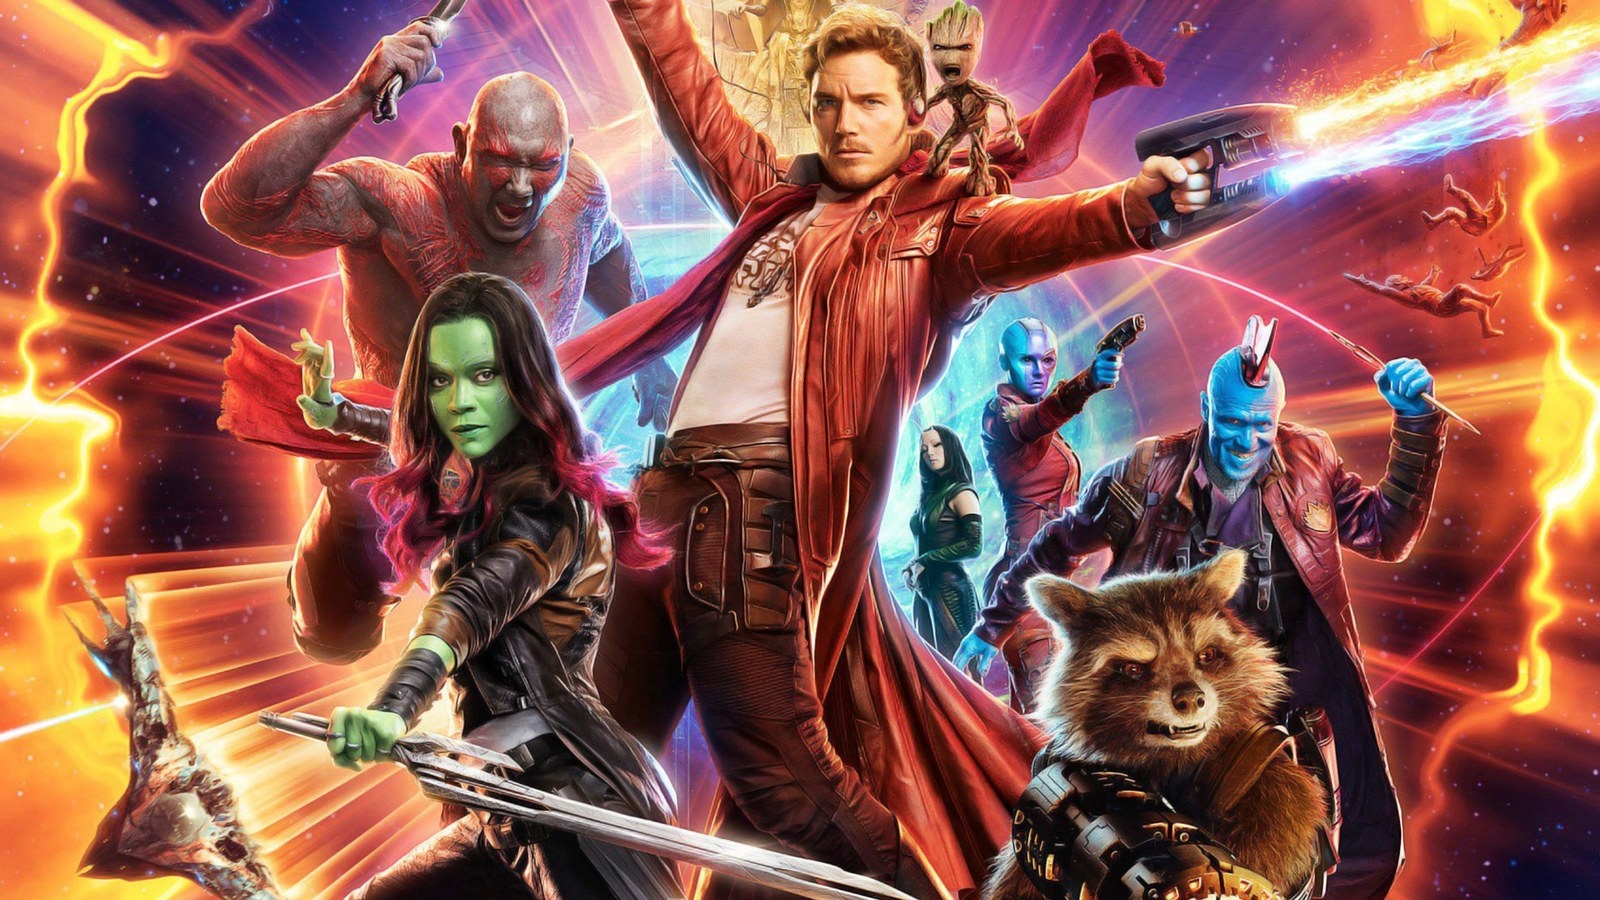 """Why it's in second-to-last place: The first 2014 Guardians of the Galaxy was such a breath of fresh air in the cinematic superhero landscape and proved that weird can work — and might even be the best combatant against superhero fatigue. Its critical and box office success arguably set a new overall tonal standard for Marvel.It's no surprise that, while returning writer and director James Gunn miraculously ups the stakes with an even funnier and weirder sequel script — including a hilarious Pac-Man visual, adorable physical comedy from Baby Groot, and perhaps the greatest joke in 2017 cinema (""""I'm Mary Poppins, y'all!"""") — you can't really break the same ground twice.So much of what made the original Guardians a standout has since become an integral part of the Marvel Cinematic Universe. The cast is still amazing — Pom Klementieff turns in one of the most delightful performances of the year as Mantis — but Chris Pratt is no longer the exciting breakout star he was in 2014. Now, post Jurassic World and Passengers, he's a bona fide movie star. His charming everyman hero schtick is still reliable, just not as fresh.In the face of new superhero properties and new superhero stars (Wonder Woman's Gal Gadot and Spider-Man: Homecoming's Tom Holland, for example), Guardians gets a bit lost in the mix. Gunn's fantastic second pass at Guardians ends up falling prey to the very symptom the original so excellently squashed: superhero fatigue.Worldwide box office earnings: $863 millionRotten Tomatoes rating: 82%"""